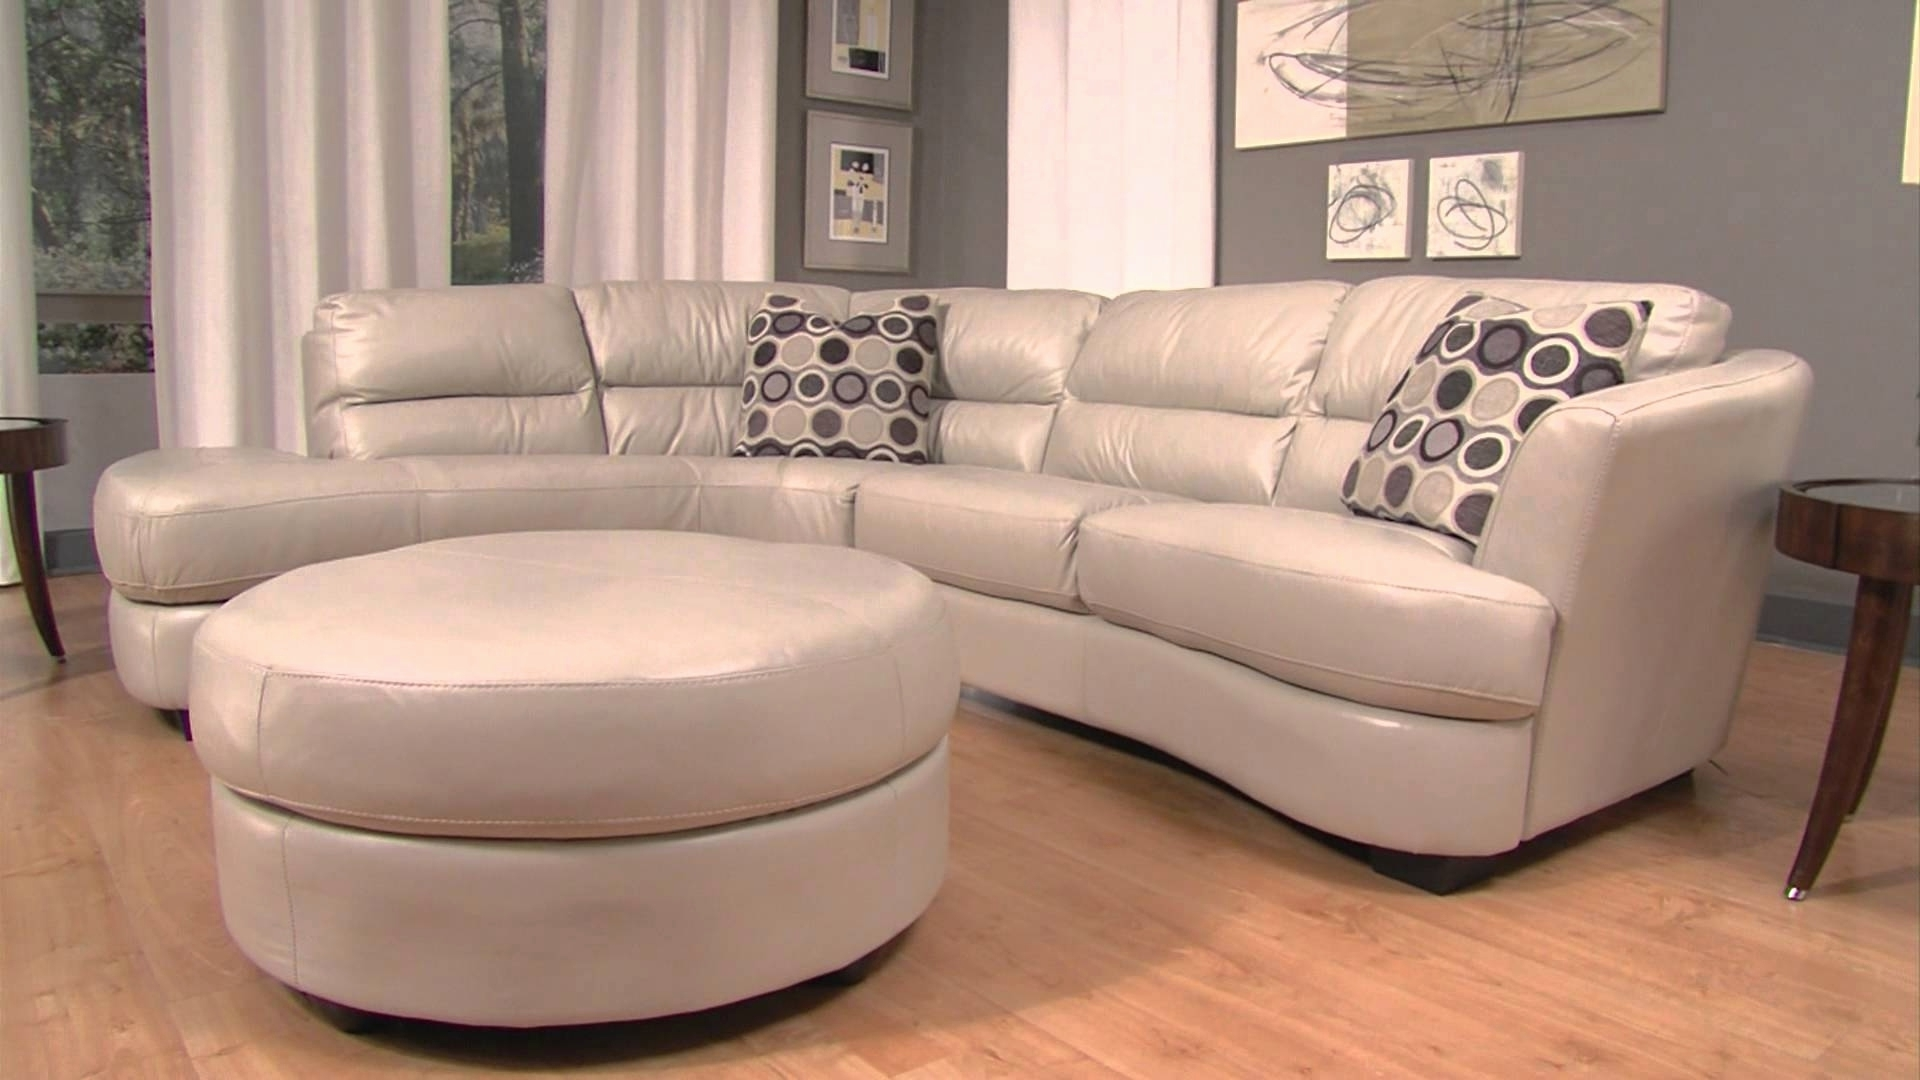 Most Current Sectional Sofas At Chicago Within Inspirational Natuzzi Sectional Sofa 2018 – Couches And Sofas Ideas (View 5 of 20)